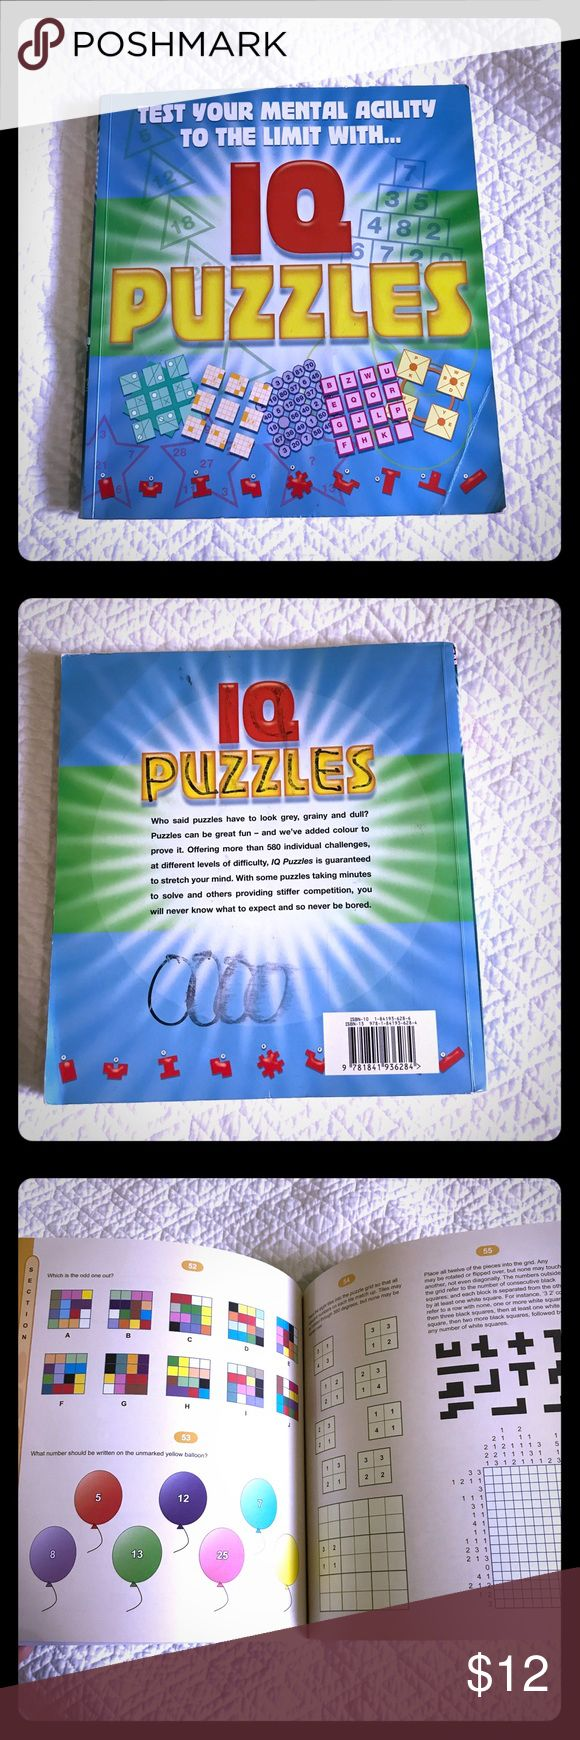 Kids book. Test your mental agility Puzzles book Excellent condition puzzle book for children Other